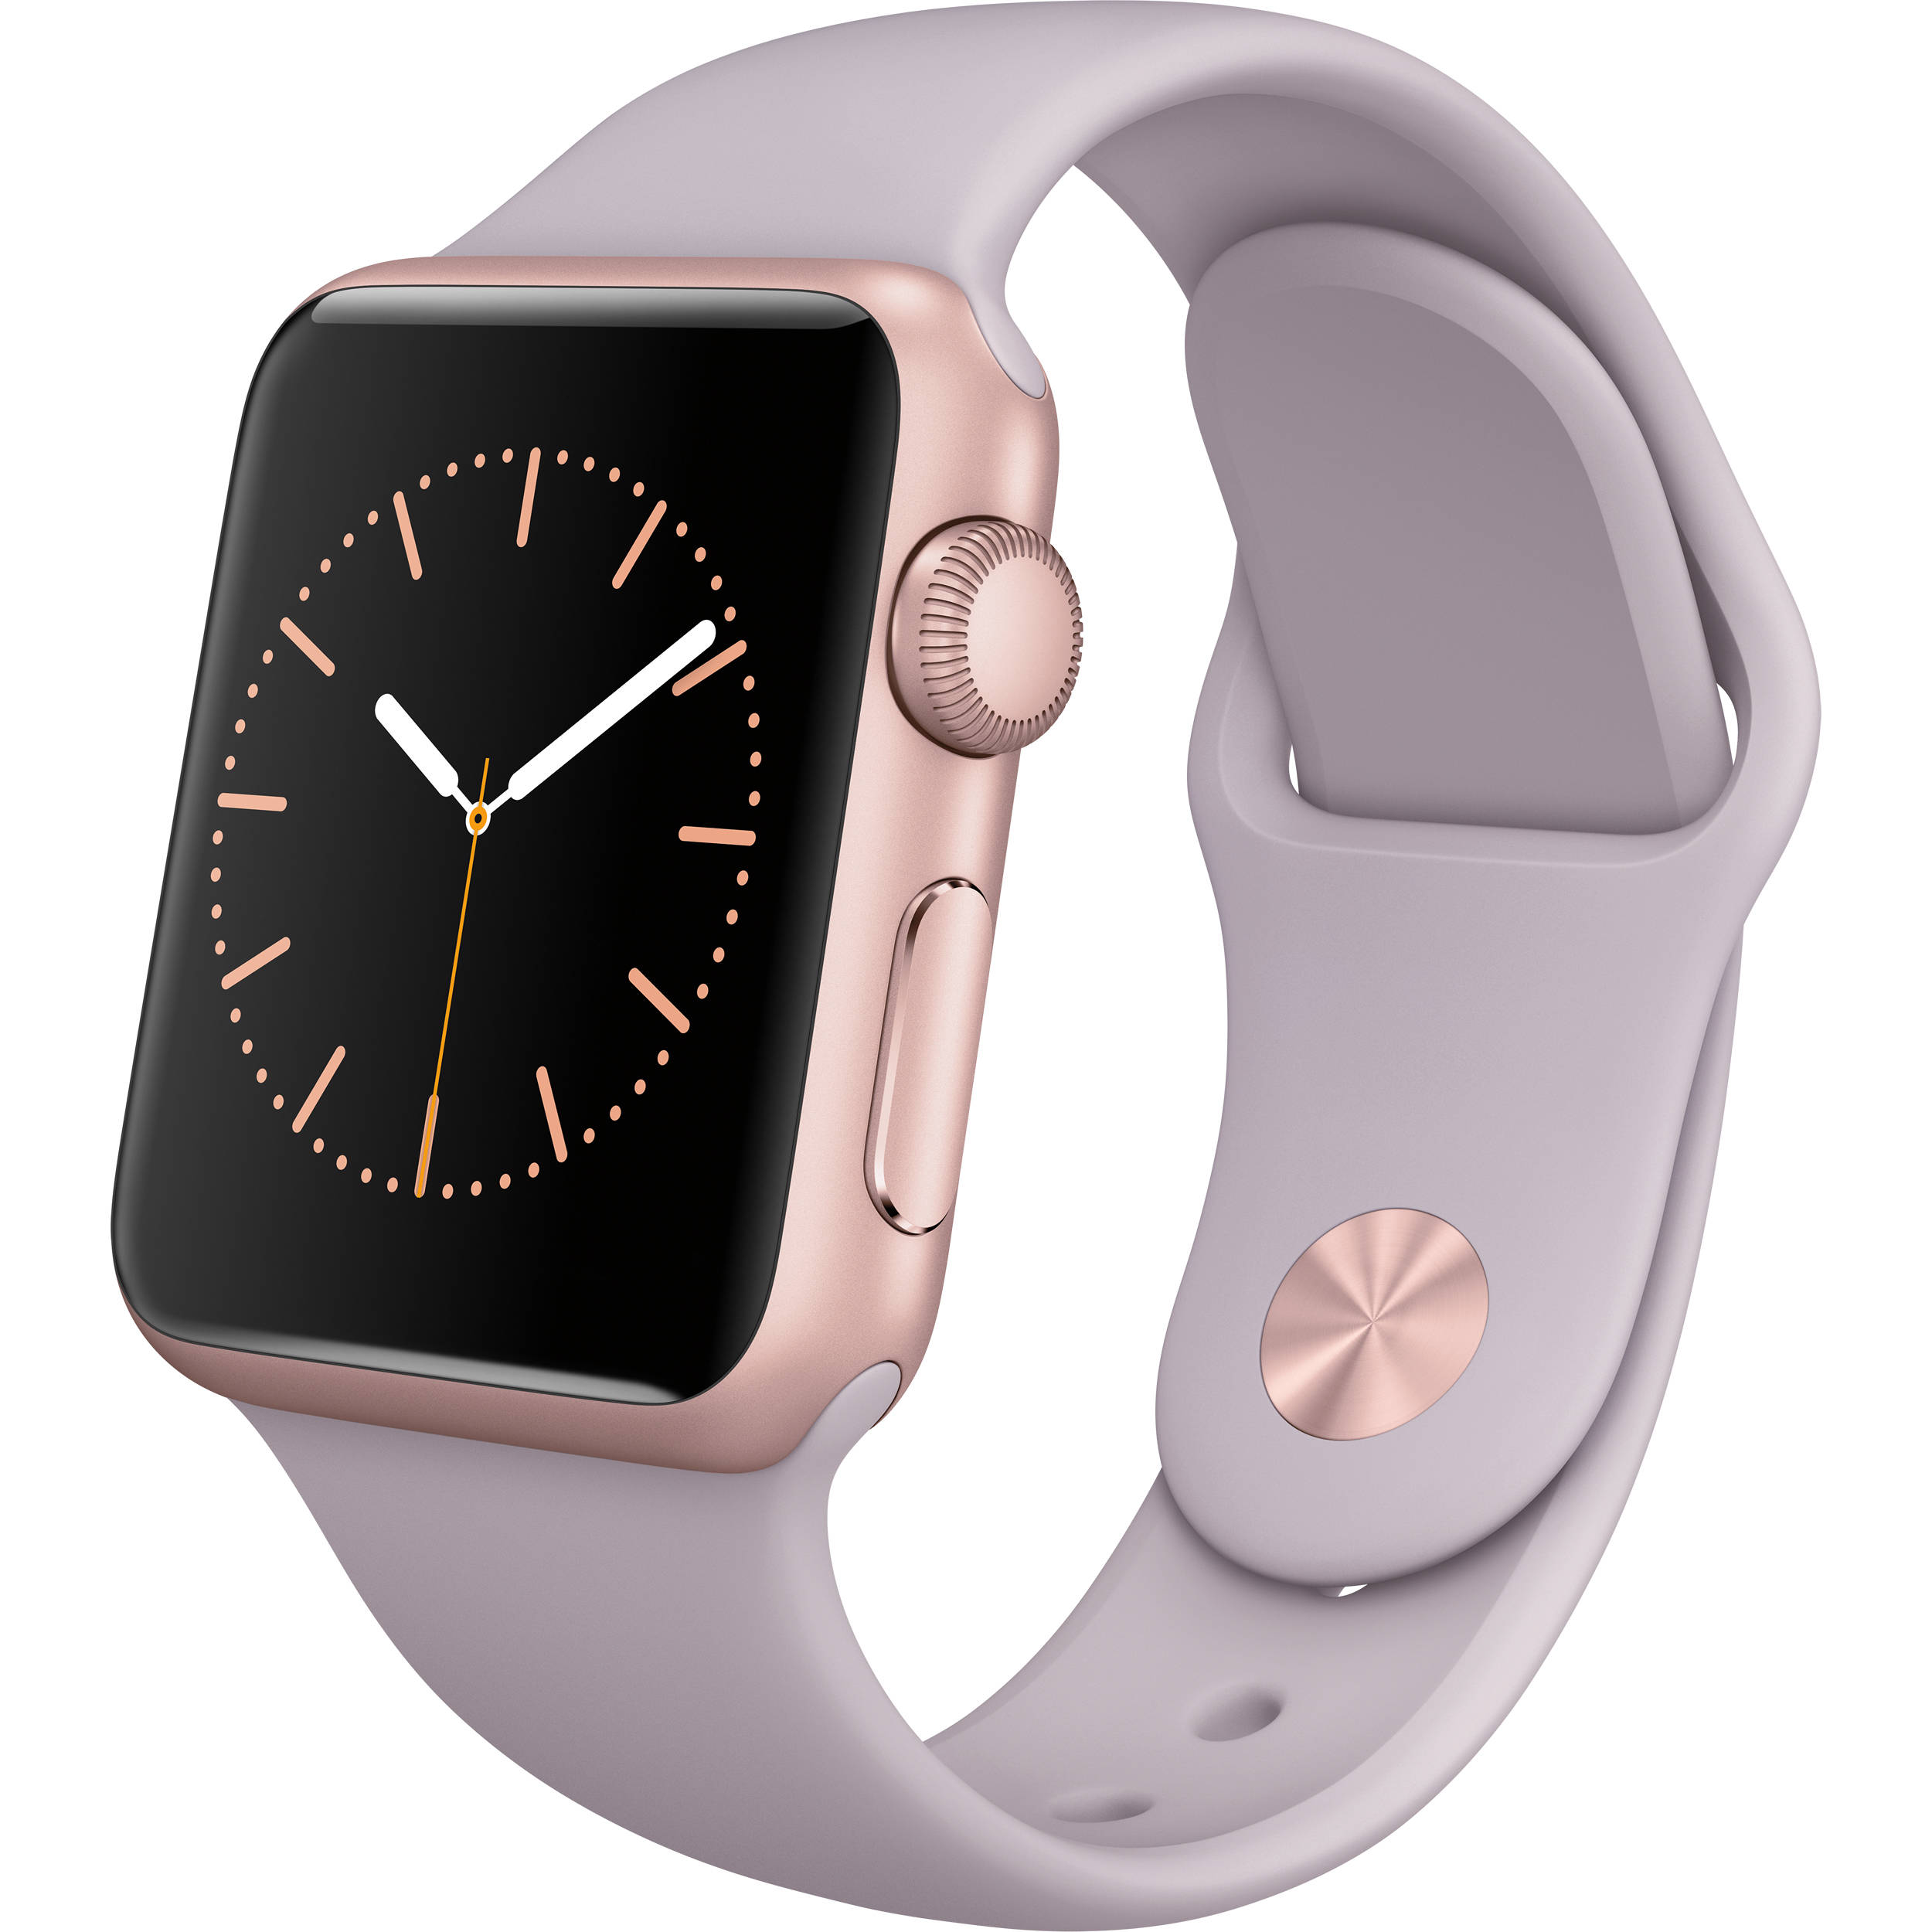 Apple watch series 2 rose gold 38mm india